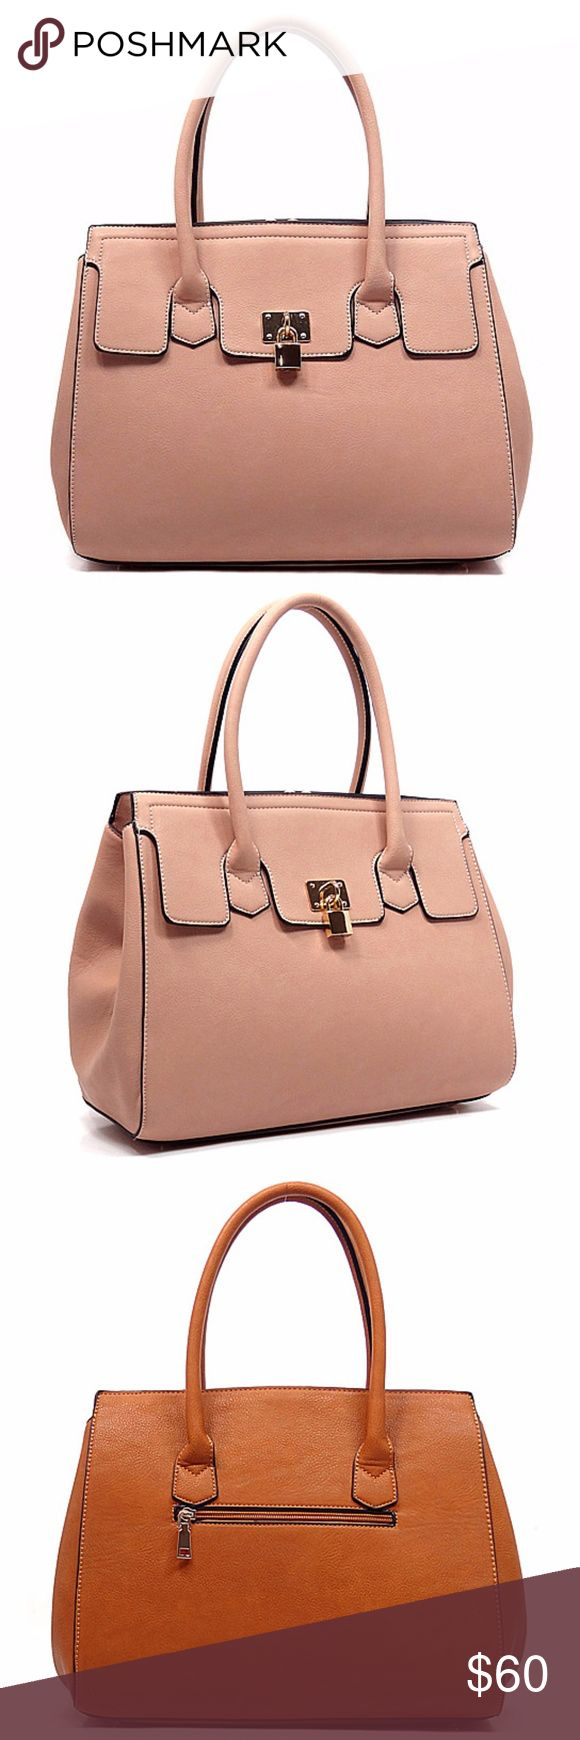 Womens Satchel Bag Pink Designer inspired handbag Faux vegan leather Zip top closure Gold-tone hardware Detachable shoulder strap L 14 * H 11 * W 5 (6 D) Pink  Weight (lbs.):3 Bags Satchels